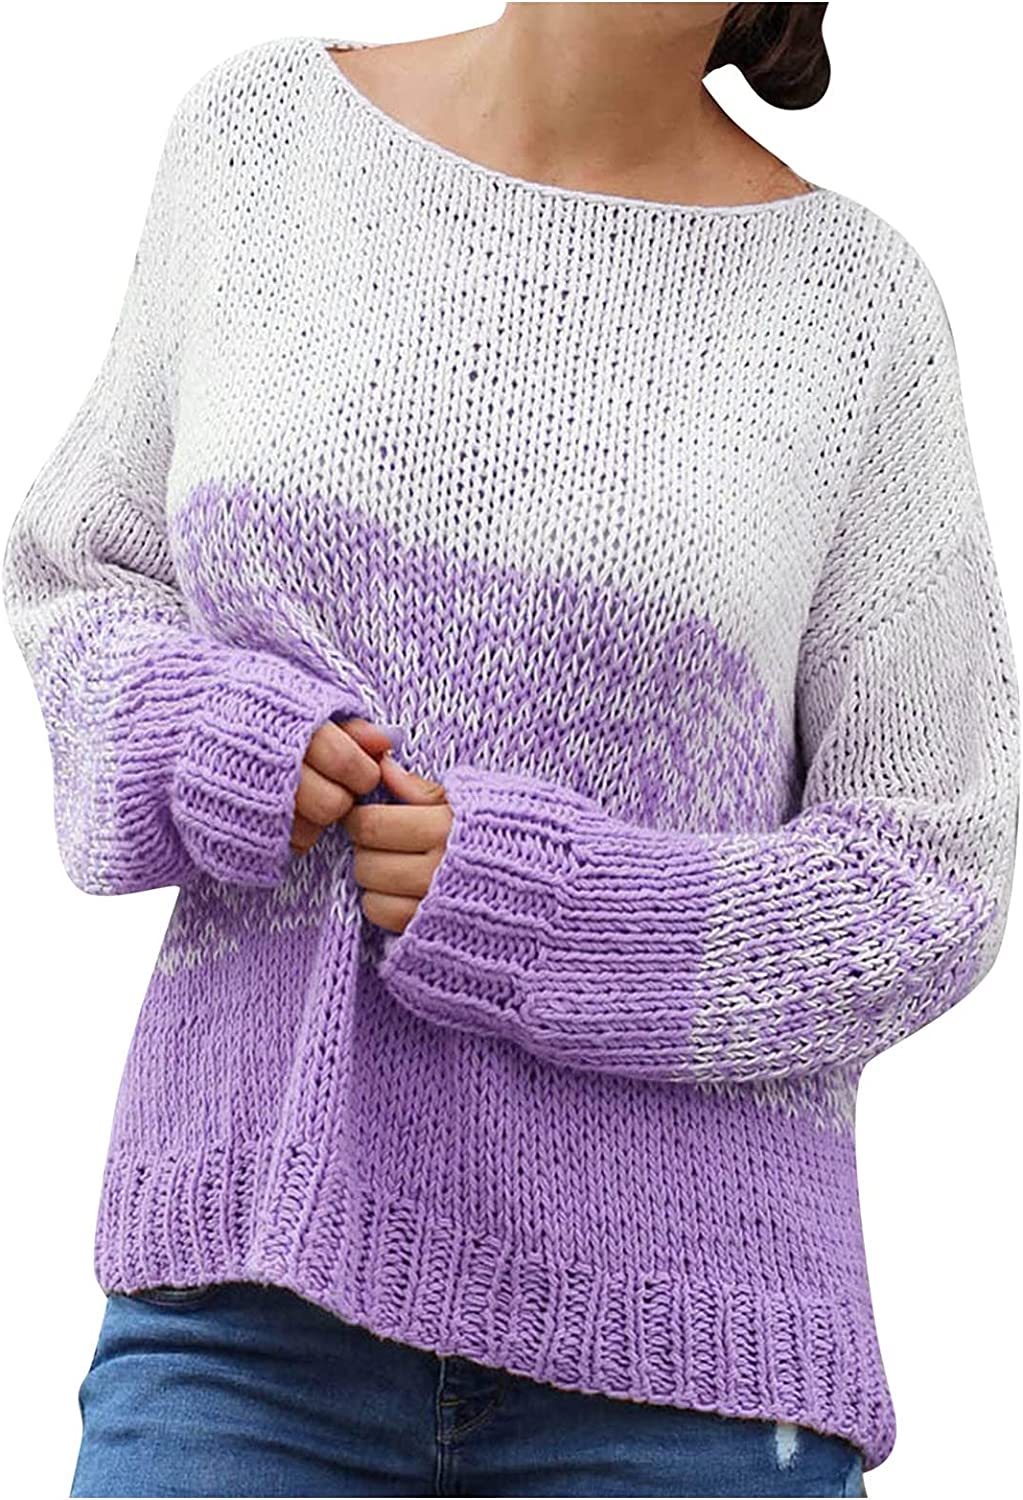 Women's Autumn Loose Color-Blocking Pullover Long-Sleeved Sweater, Long Sleeves Plus Size Shirts Loose Tops AA1741